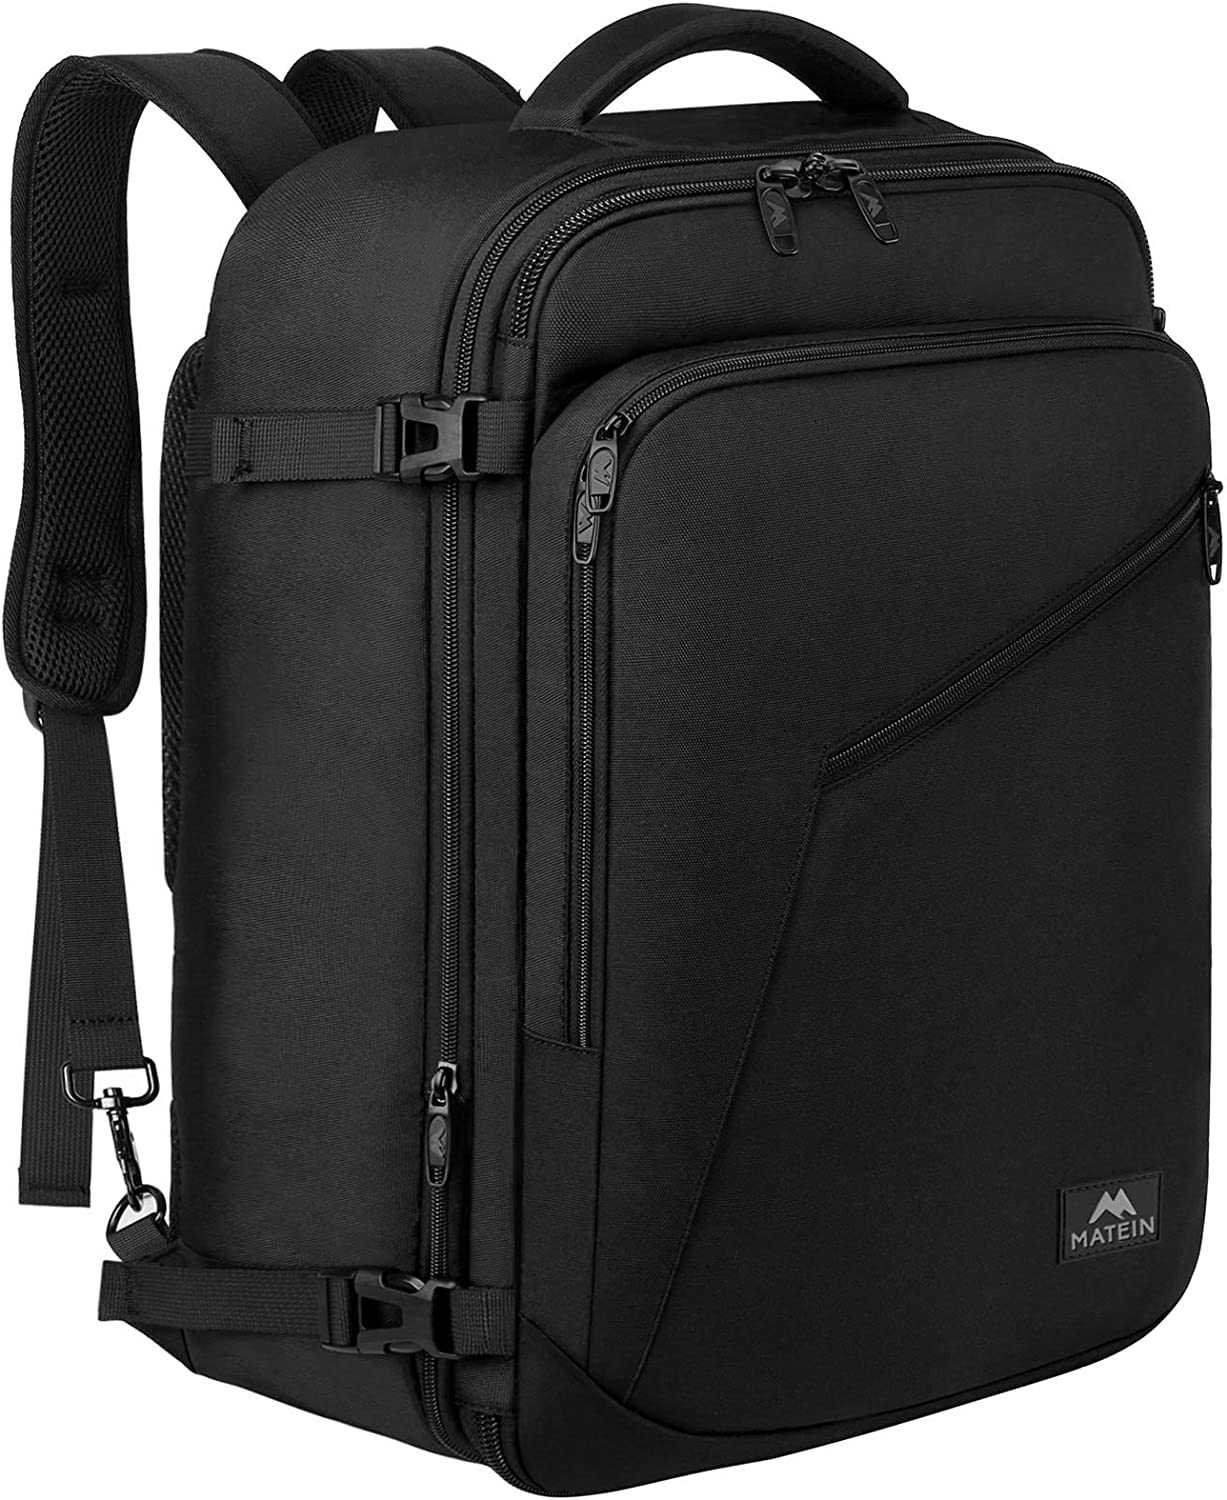 Matein Carry on Backpack, Extra Large Travel Backpack